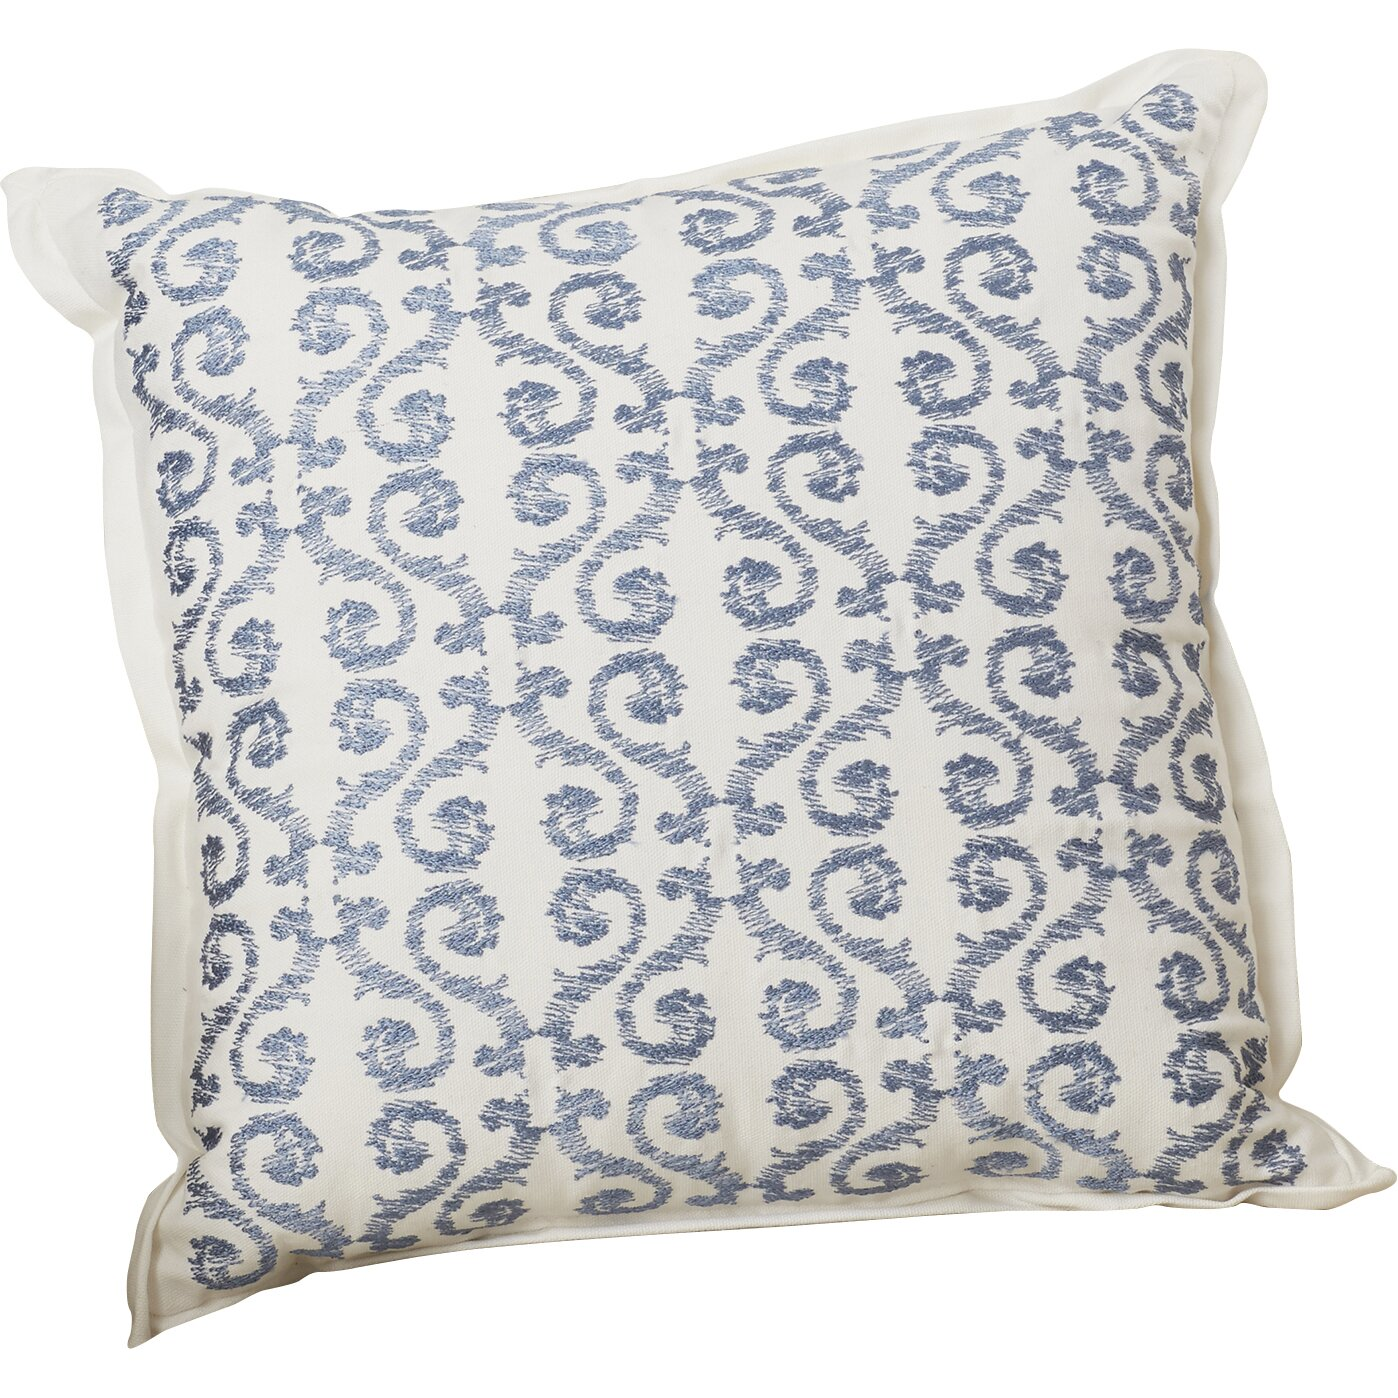 Max Studio Home Decorative Pillows : Brayden Studio Bondurant Throw Pillow Wayfair